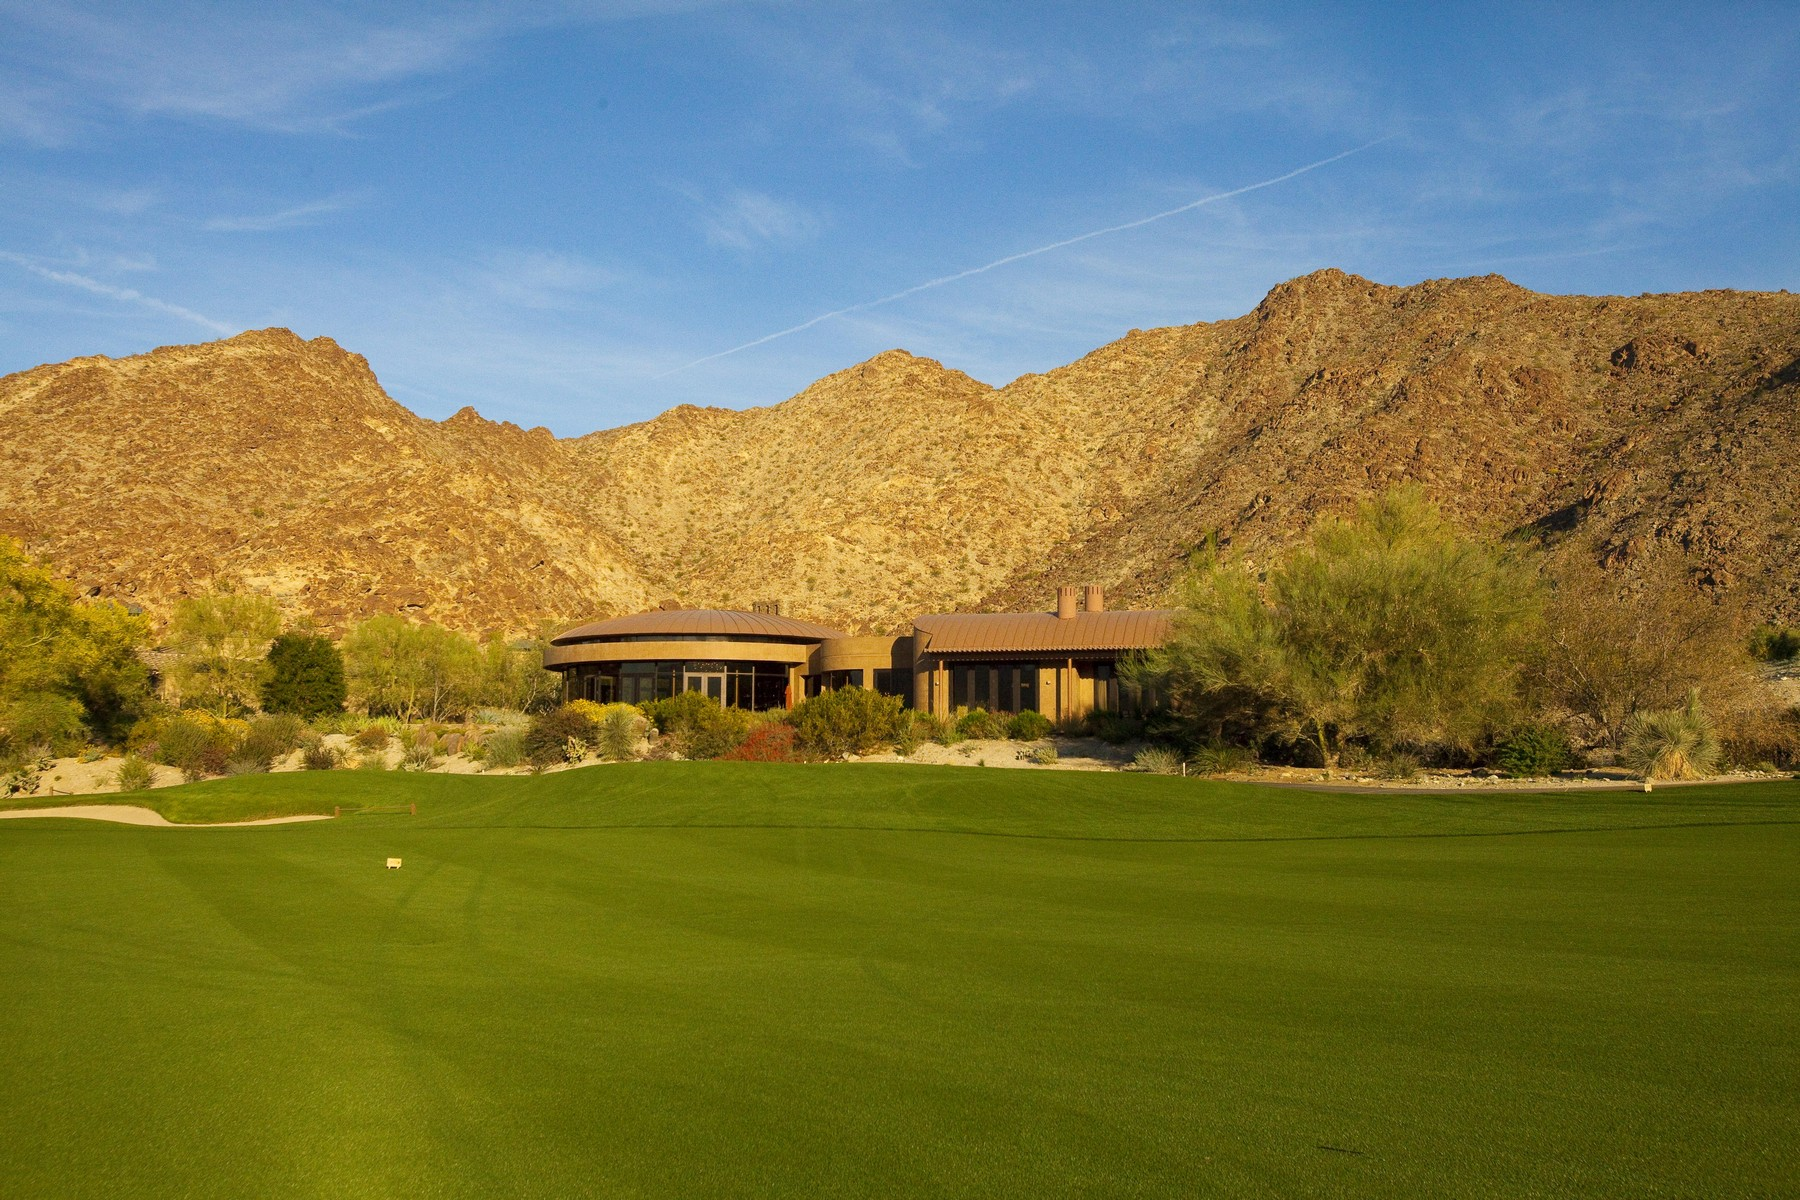 Single Family Home for Sale at 74656 Desert Arroyo Indian Wells, California, 92210 United States